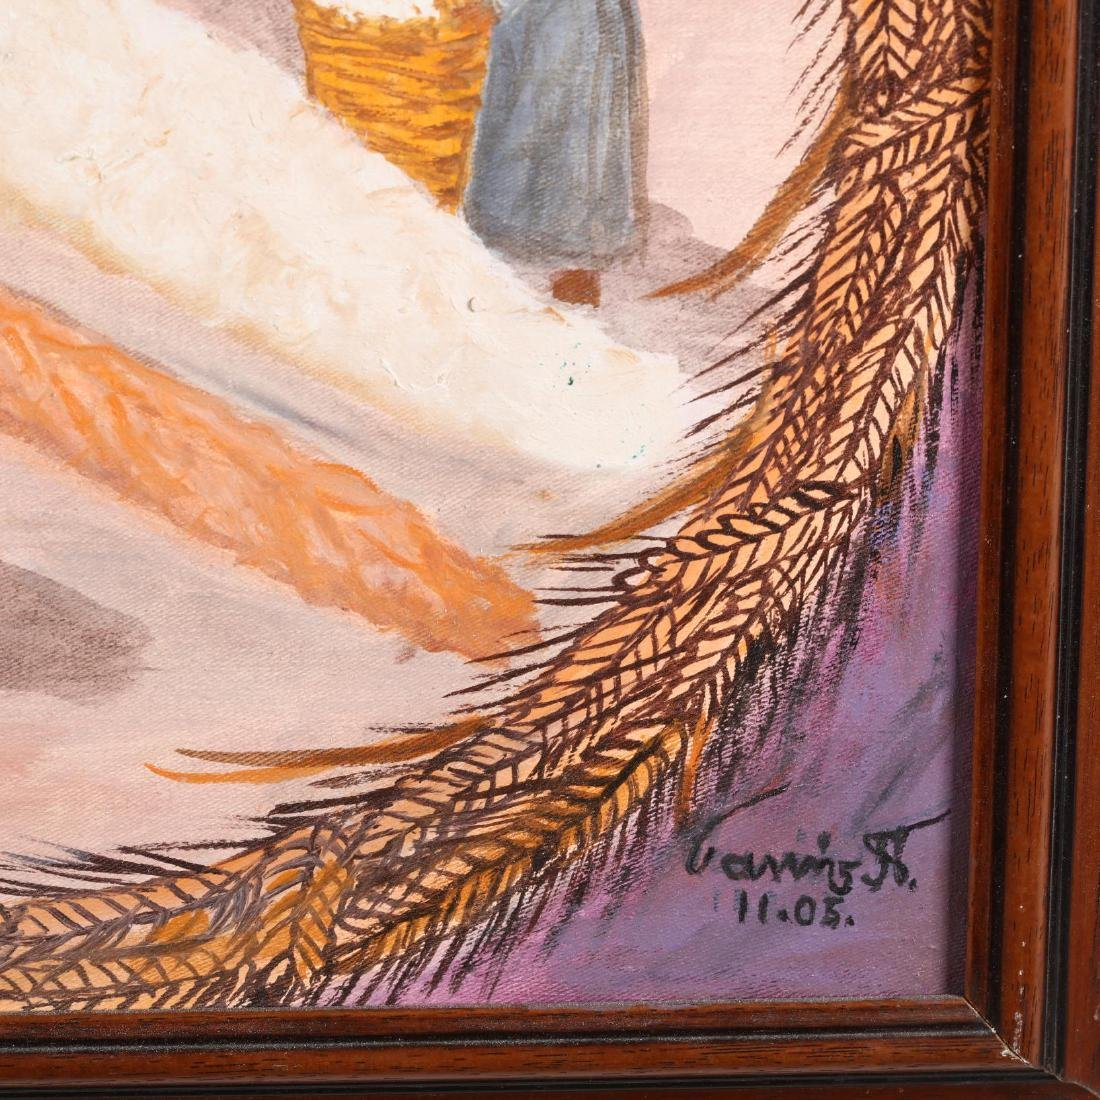 Yiannis Pelekanos (Cypriot, b. 1937), Wheat Production - 2